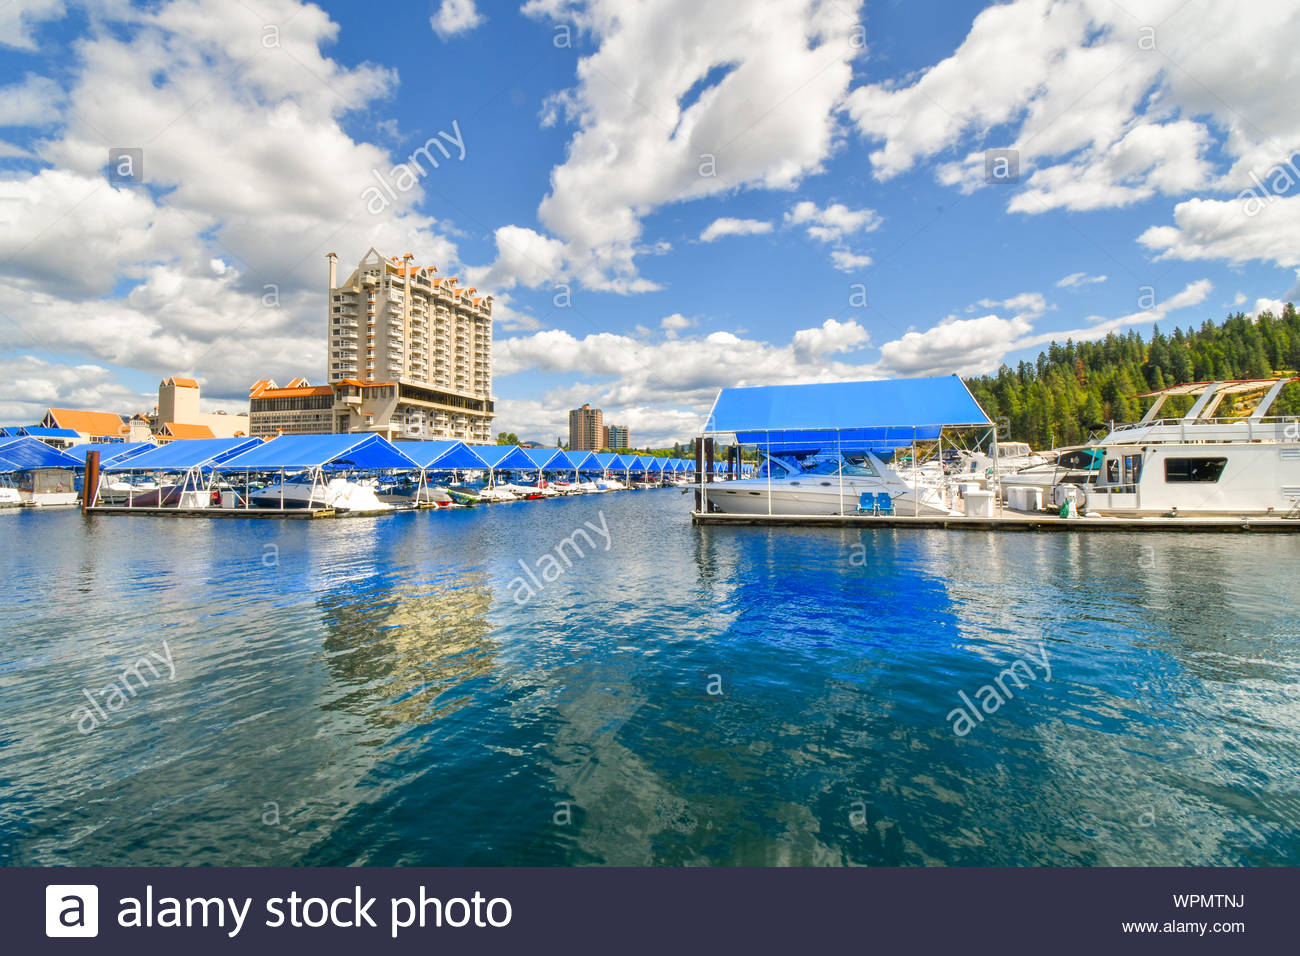 A view from the floating boardwalk of the marina full with boats and the Coeur d'Alene Resort on Lake Coeur d'Alene. Stock Photo